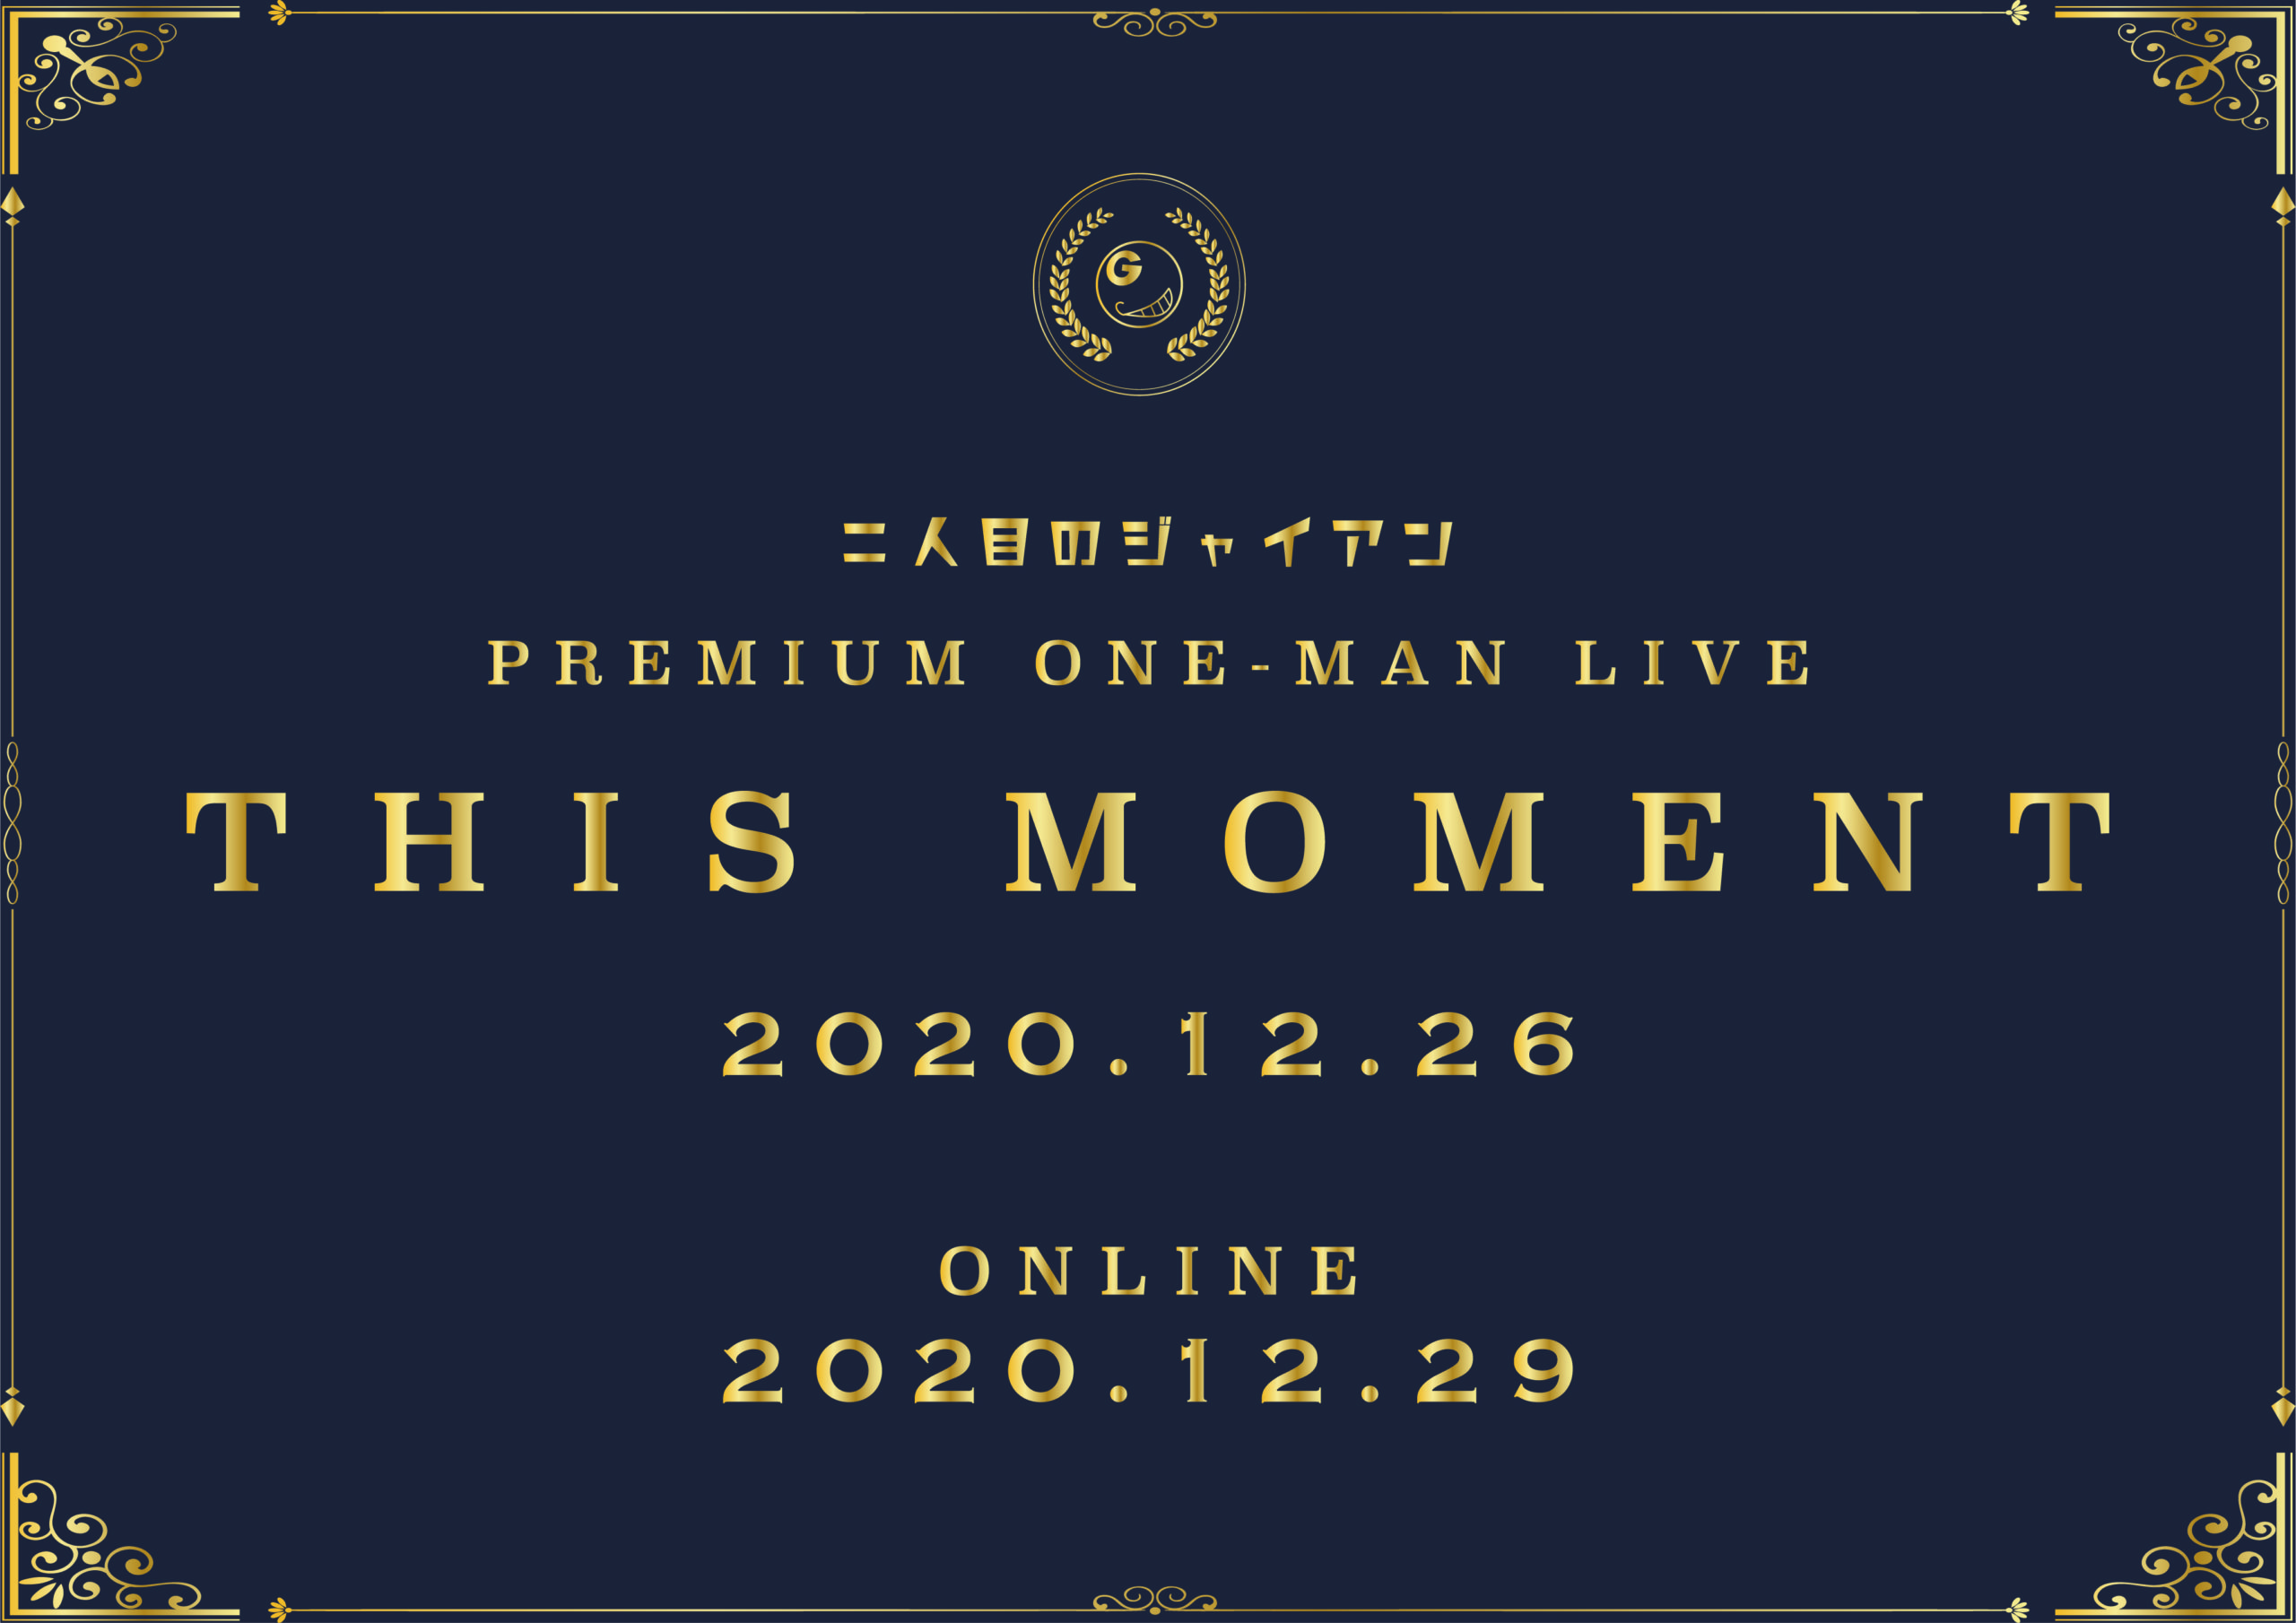 PREMIUM ONE-MAN LIVE 『THIS MOMENT』